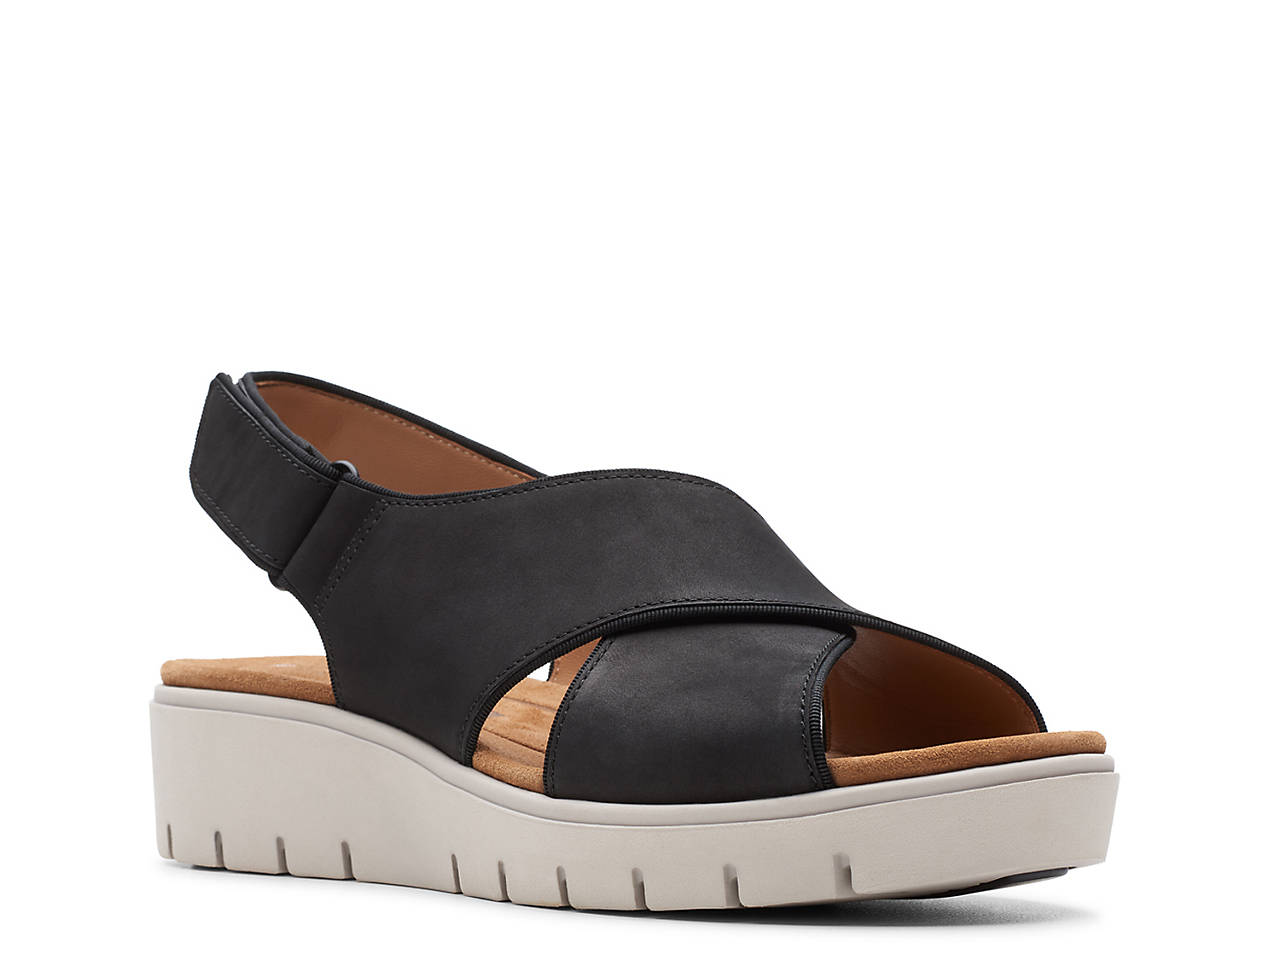 Clarks Unstructured Un.Karely Sun Wedge Sandal Women s Shoes